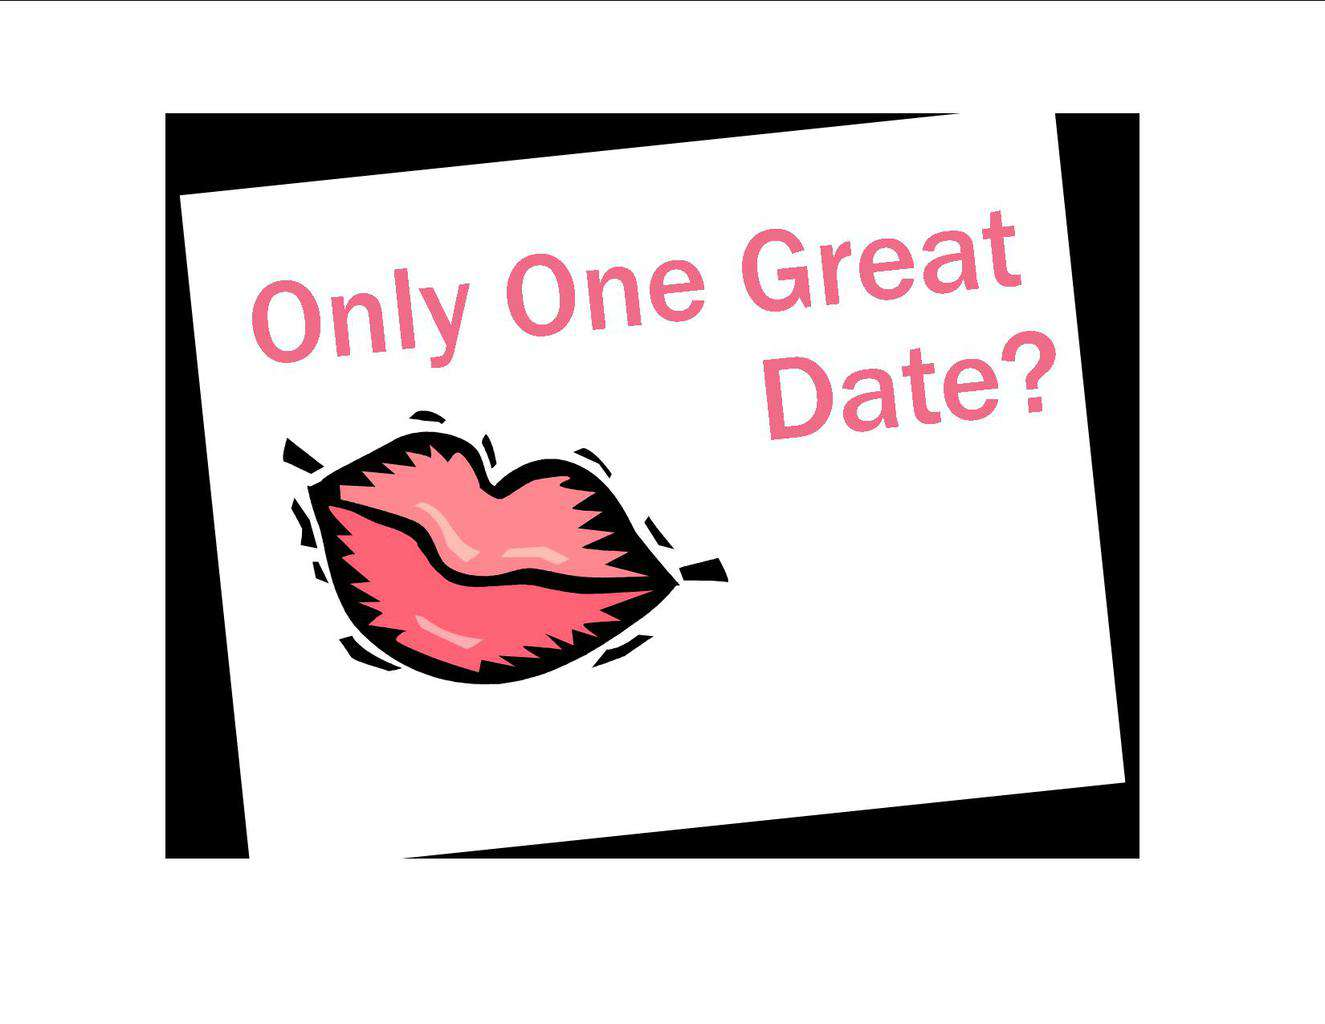 online dating what happens after the first date The first prominent online dating site was matchcom, which launched in 1995 eharmony started in 2000, okcupid in 2004, and more recently, a wave of mobile people-swiping apps, like tinder and hinge, have become wildly popular.